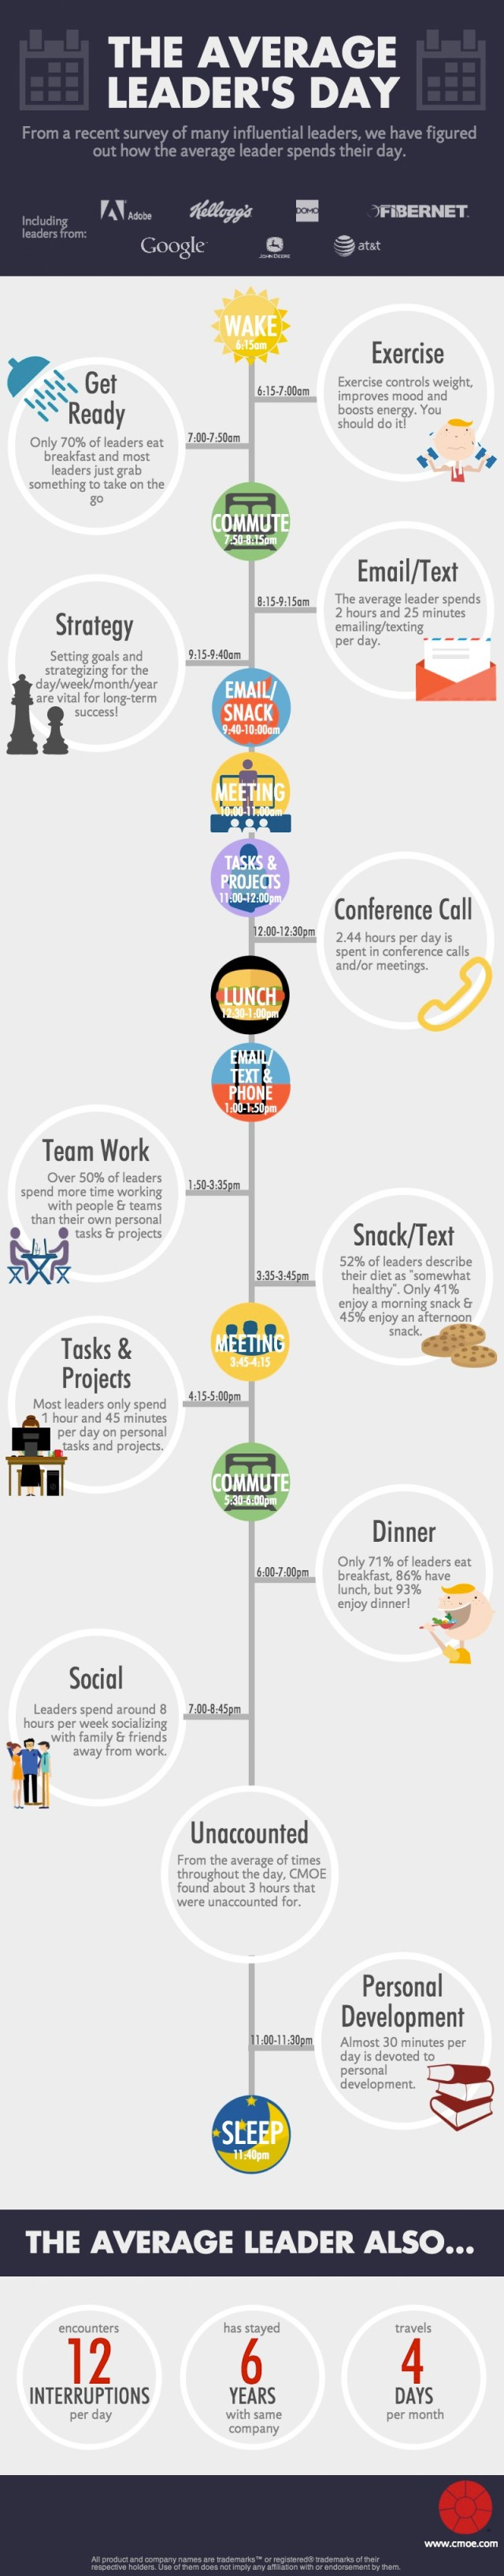 how-fortune-500-leaders spend-minute-day-infographic